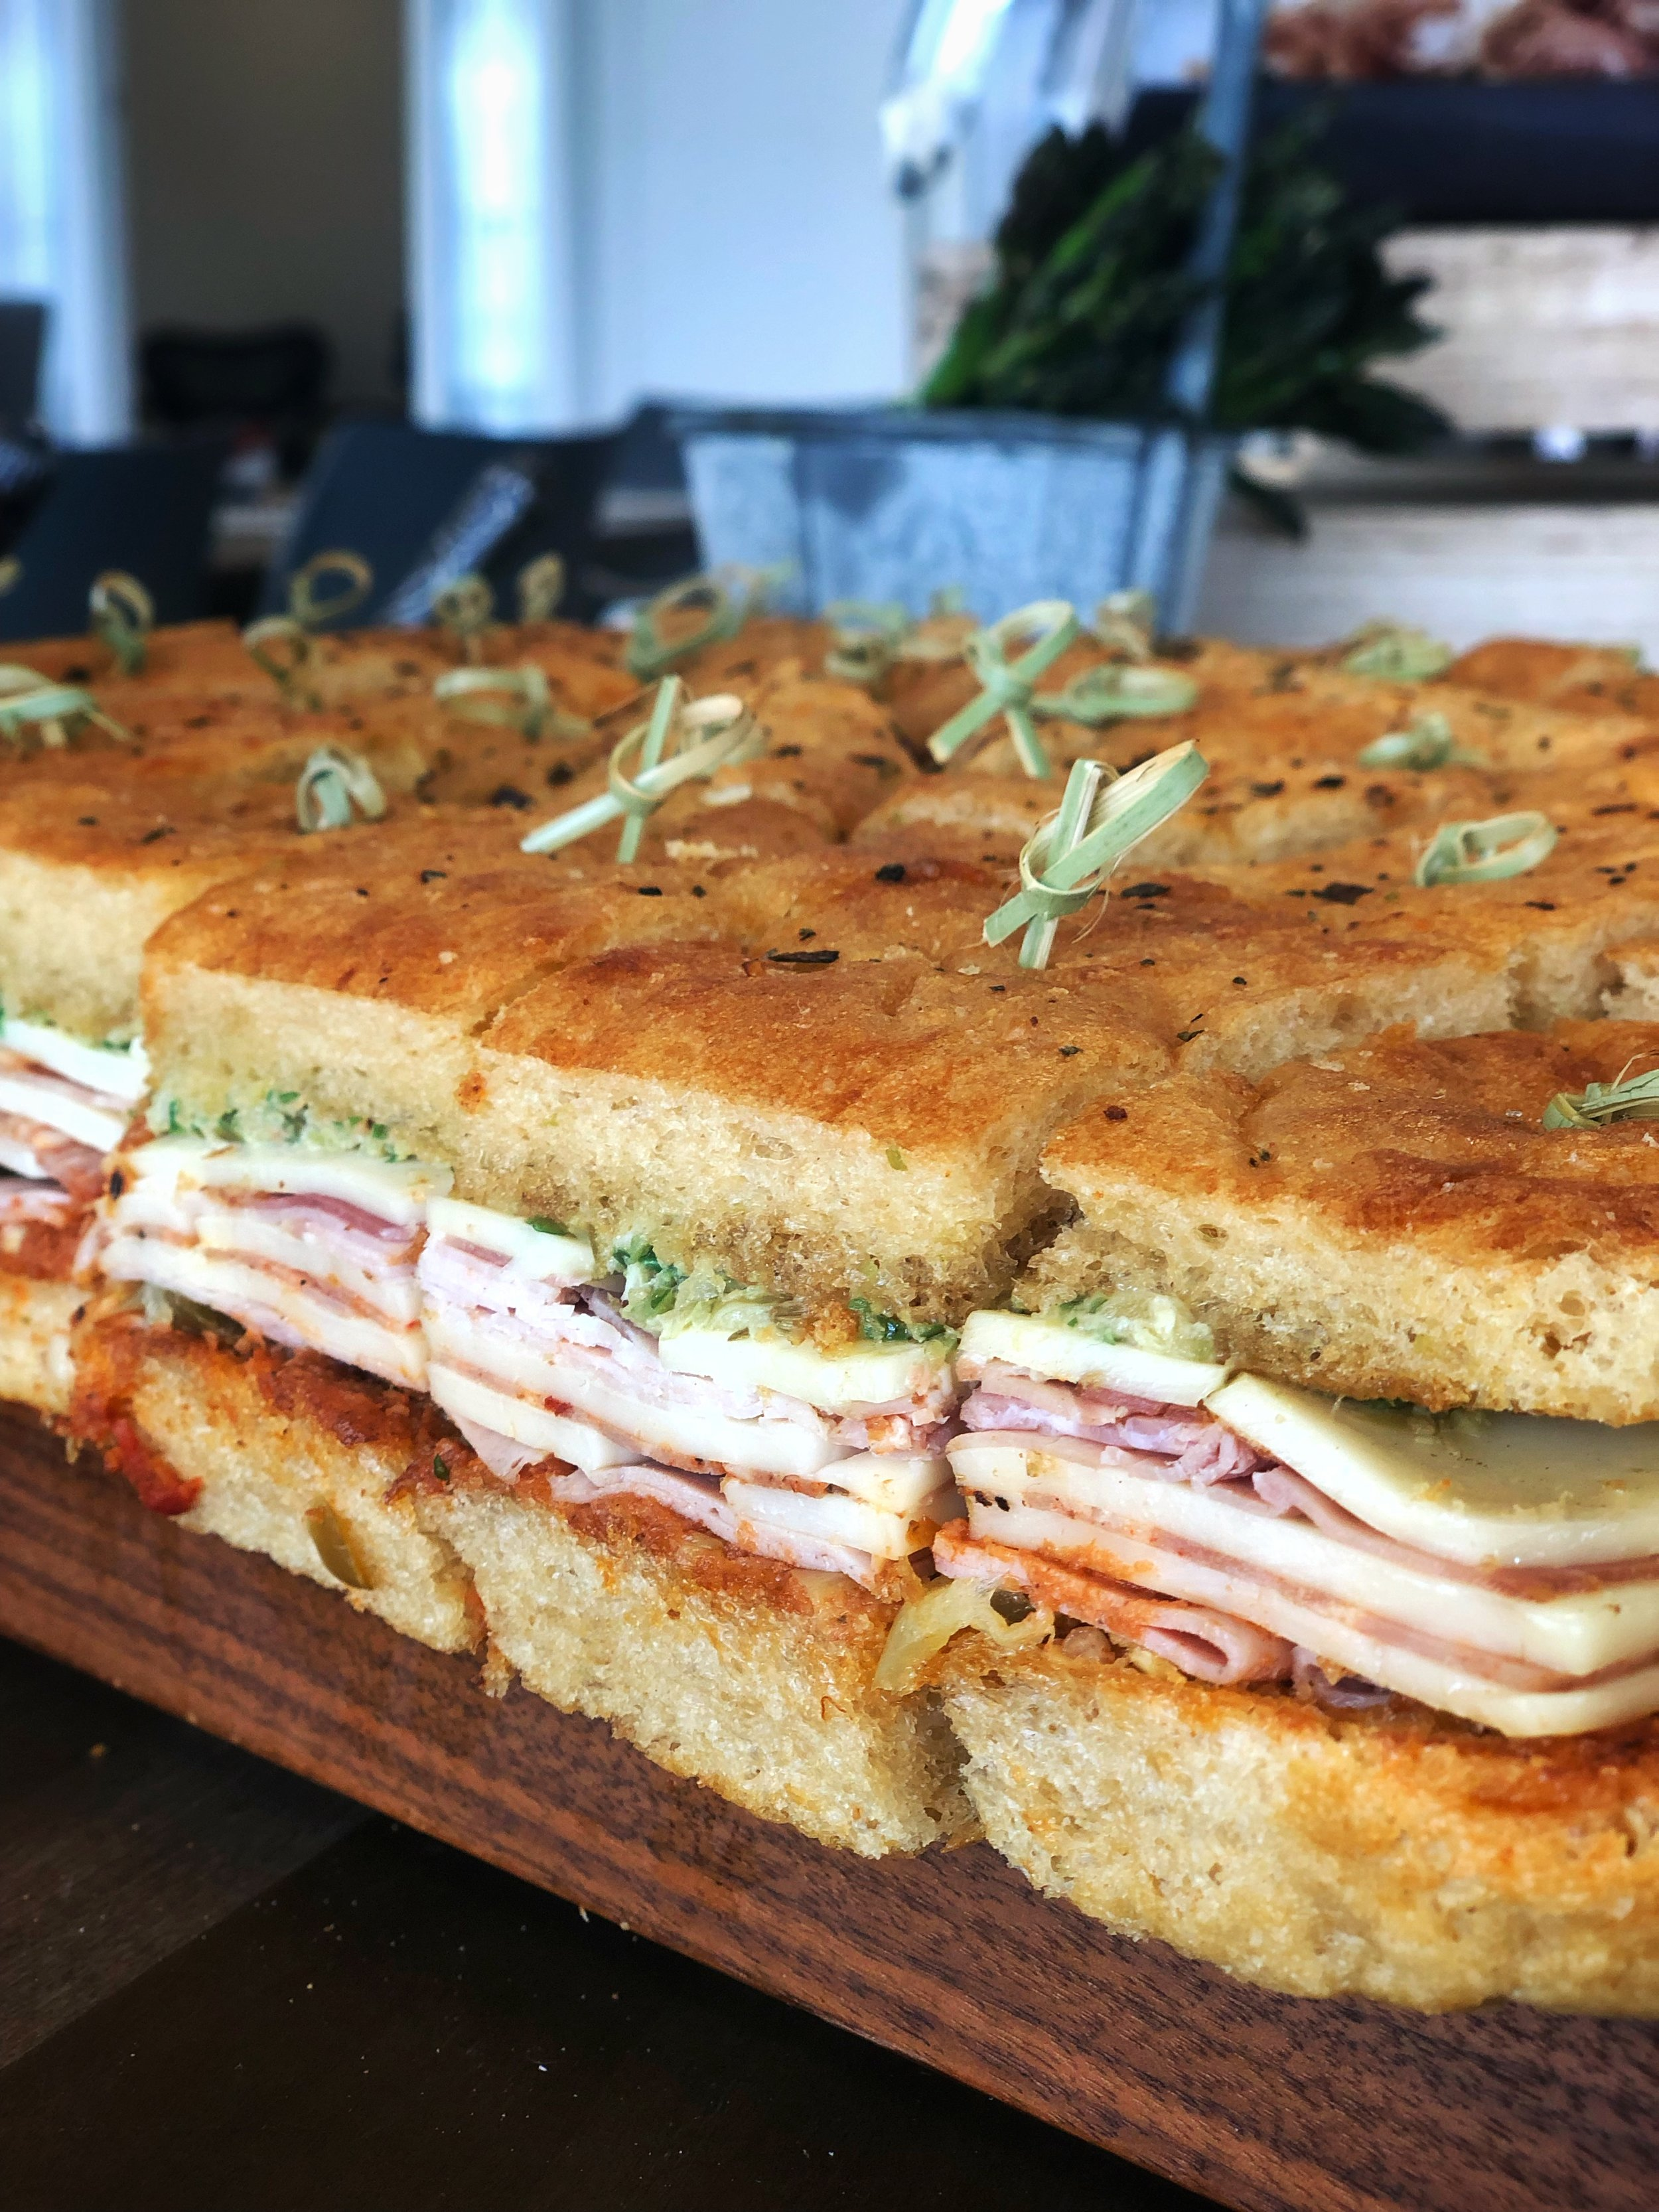 Not your average office lunch. - Freshly baked bread, quality handmade ingredients and locally raised meats are the hallmark of all of our offerings. We offer a distinctive take on corporate breakfast, lunch and team building events. Customized themed menus available for groups of 20 or more.